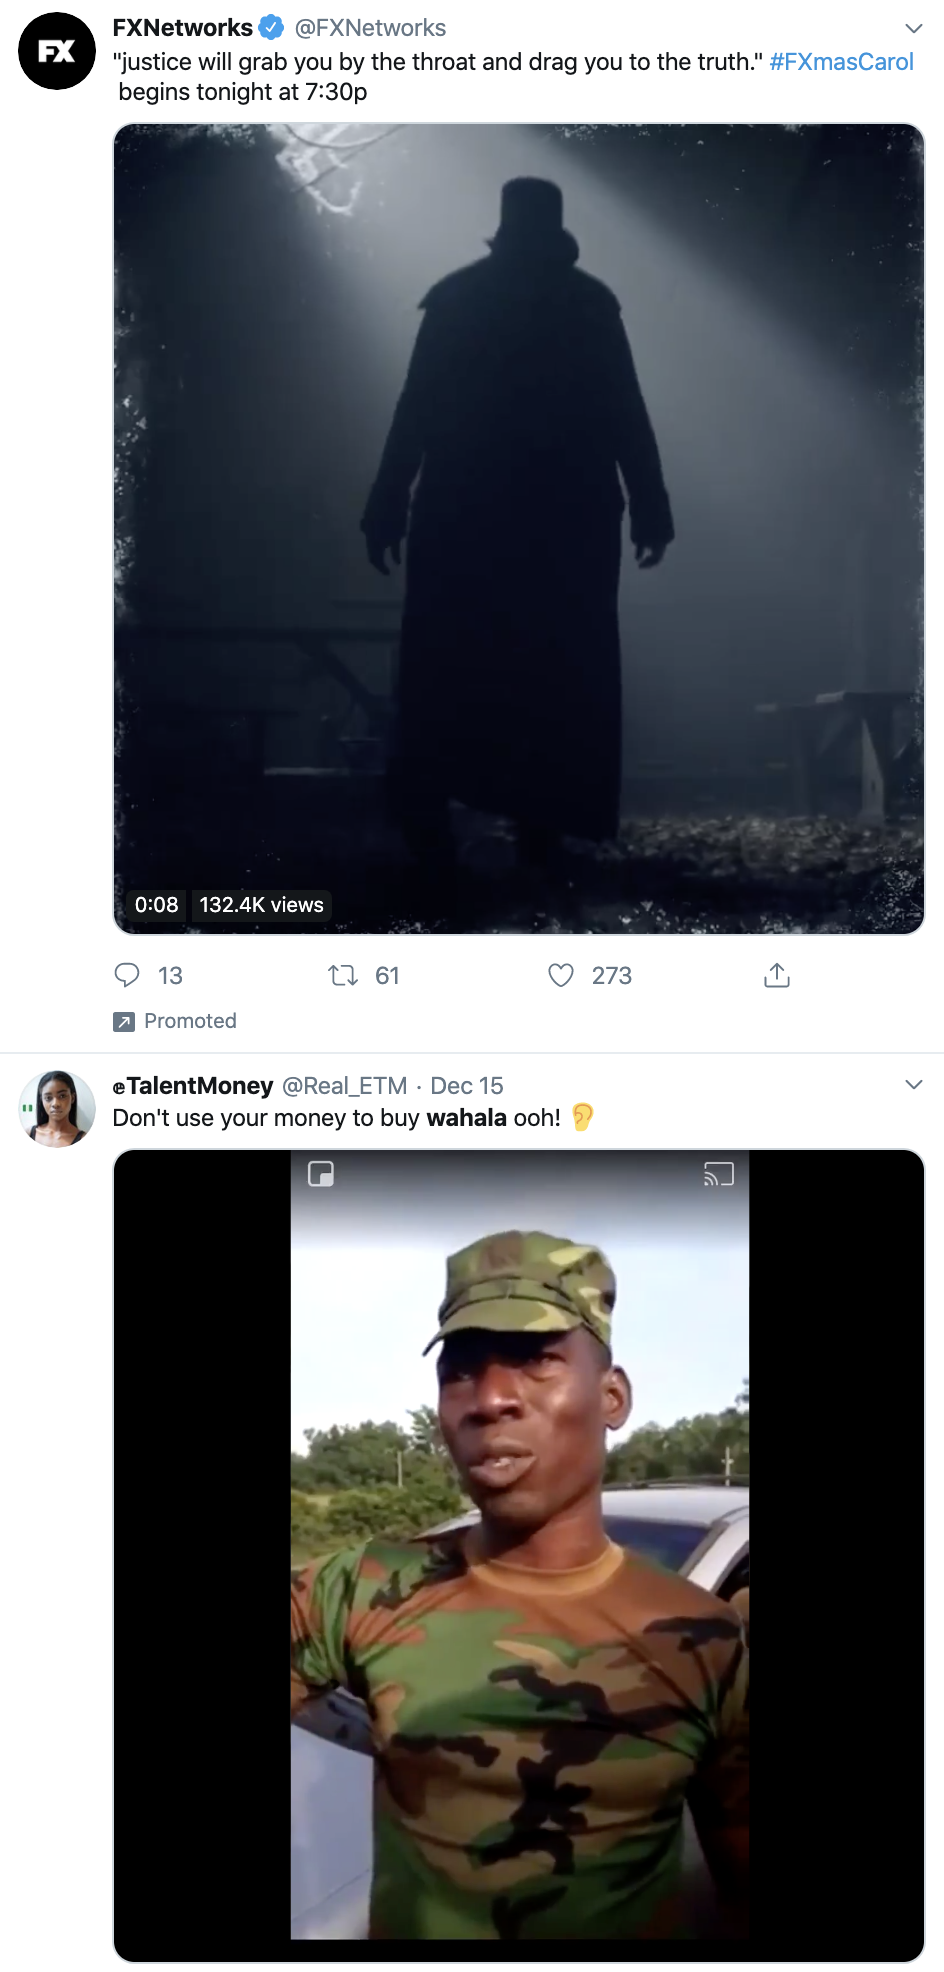 Screen-Shot-2019-12-19-at-3.25.46-PM Incompetent Trump Admin Lists Wakanda As Tariff Territory Domestic Policy Featured Media Music Top Stories